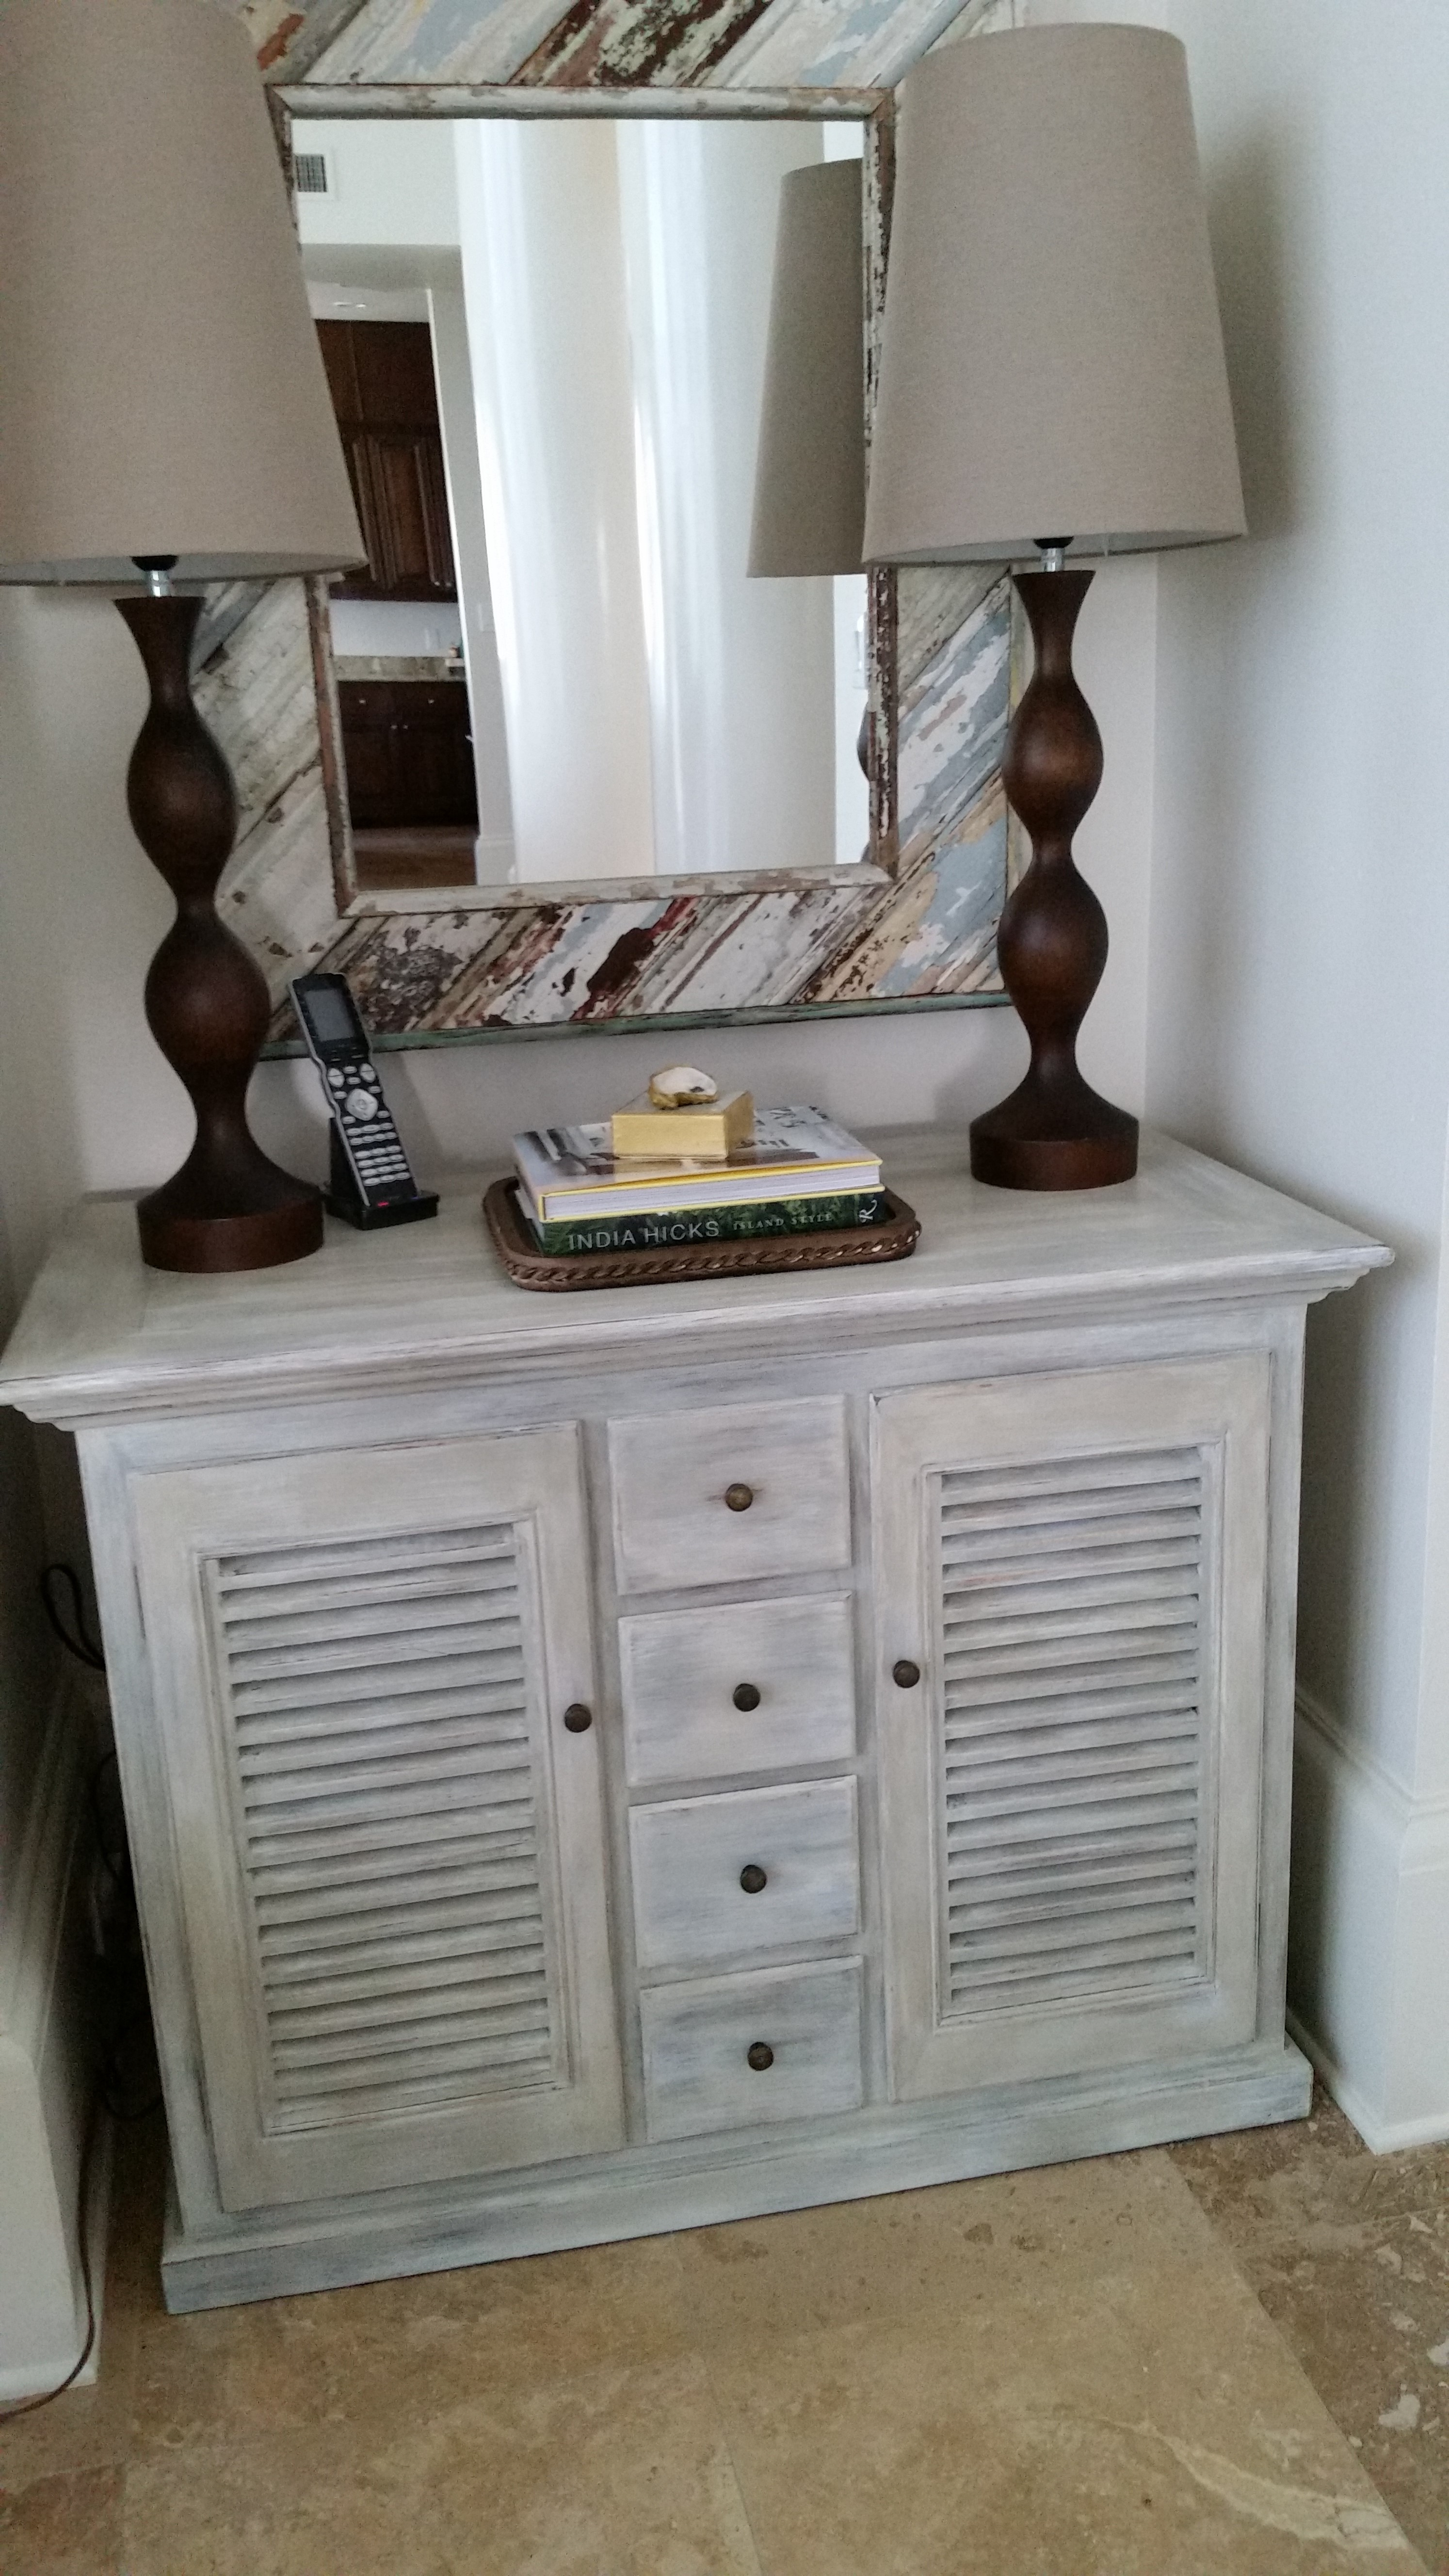 This Is A Well Built Cabinet That Was Just Too Dark For Beach House We Refinished It In White With Light Glaze And Slight Distressing